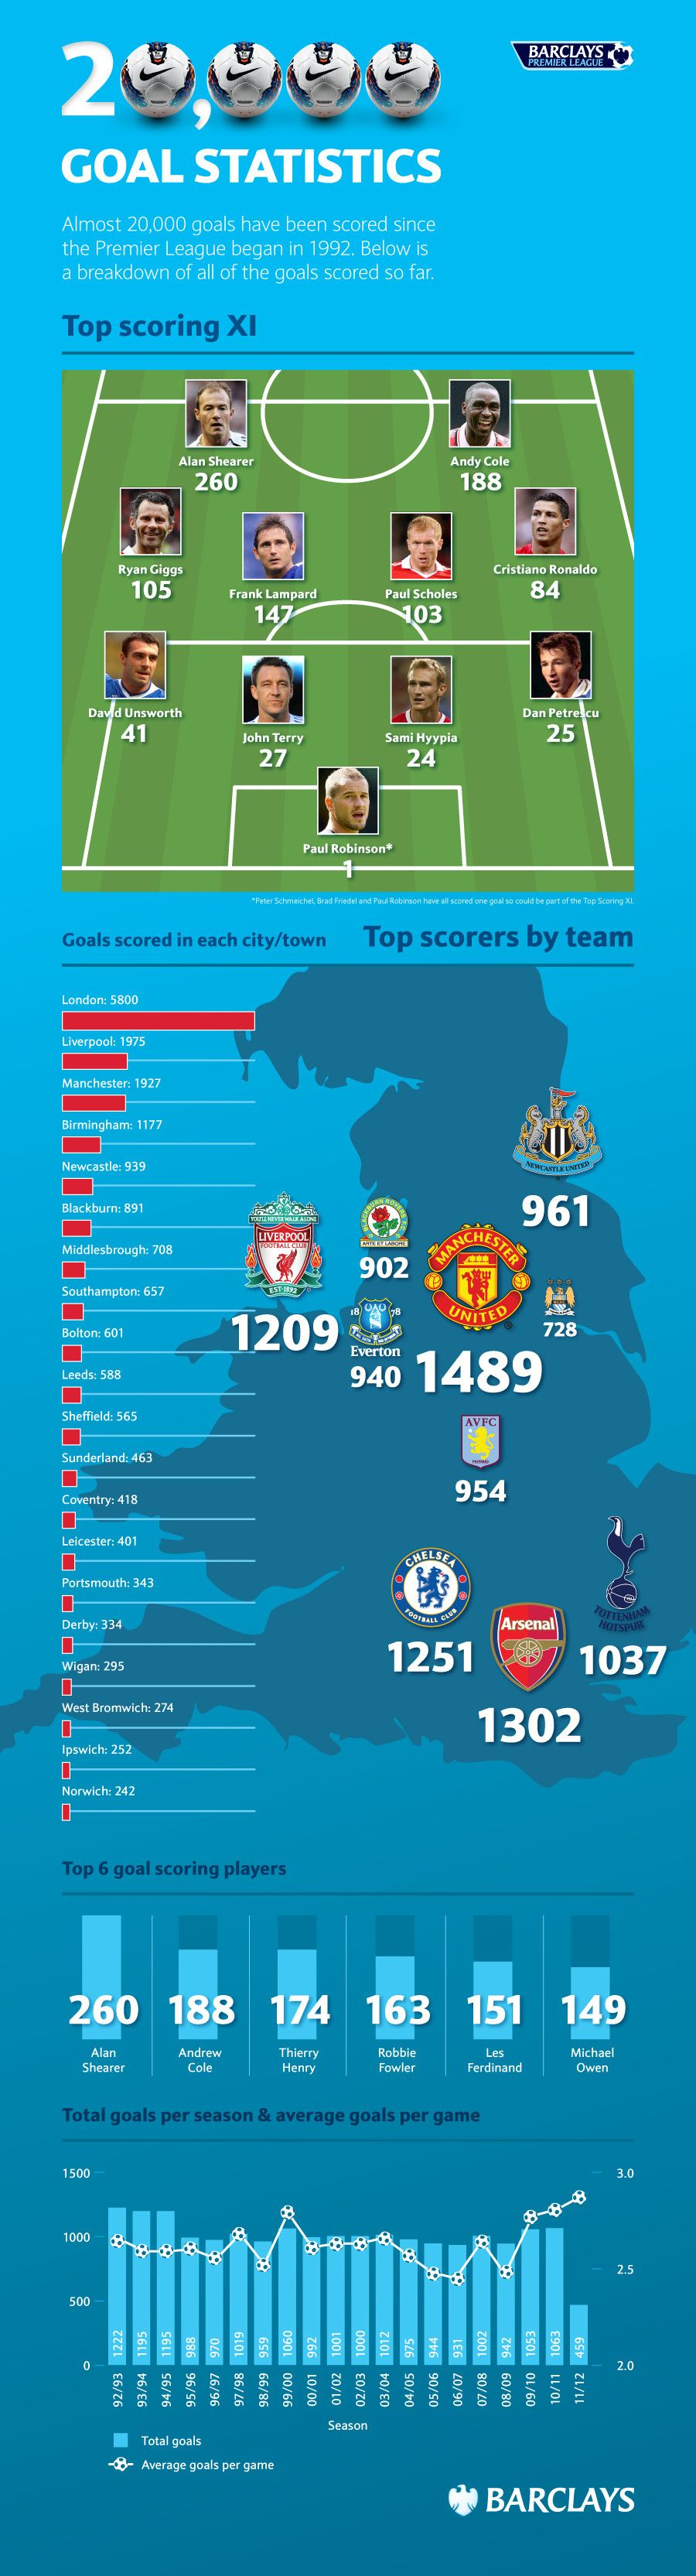 20,000 Premier League Goals: An Infographic Breakdown